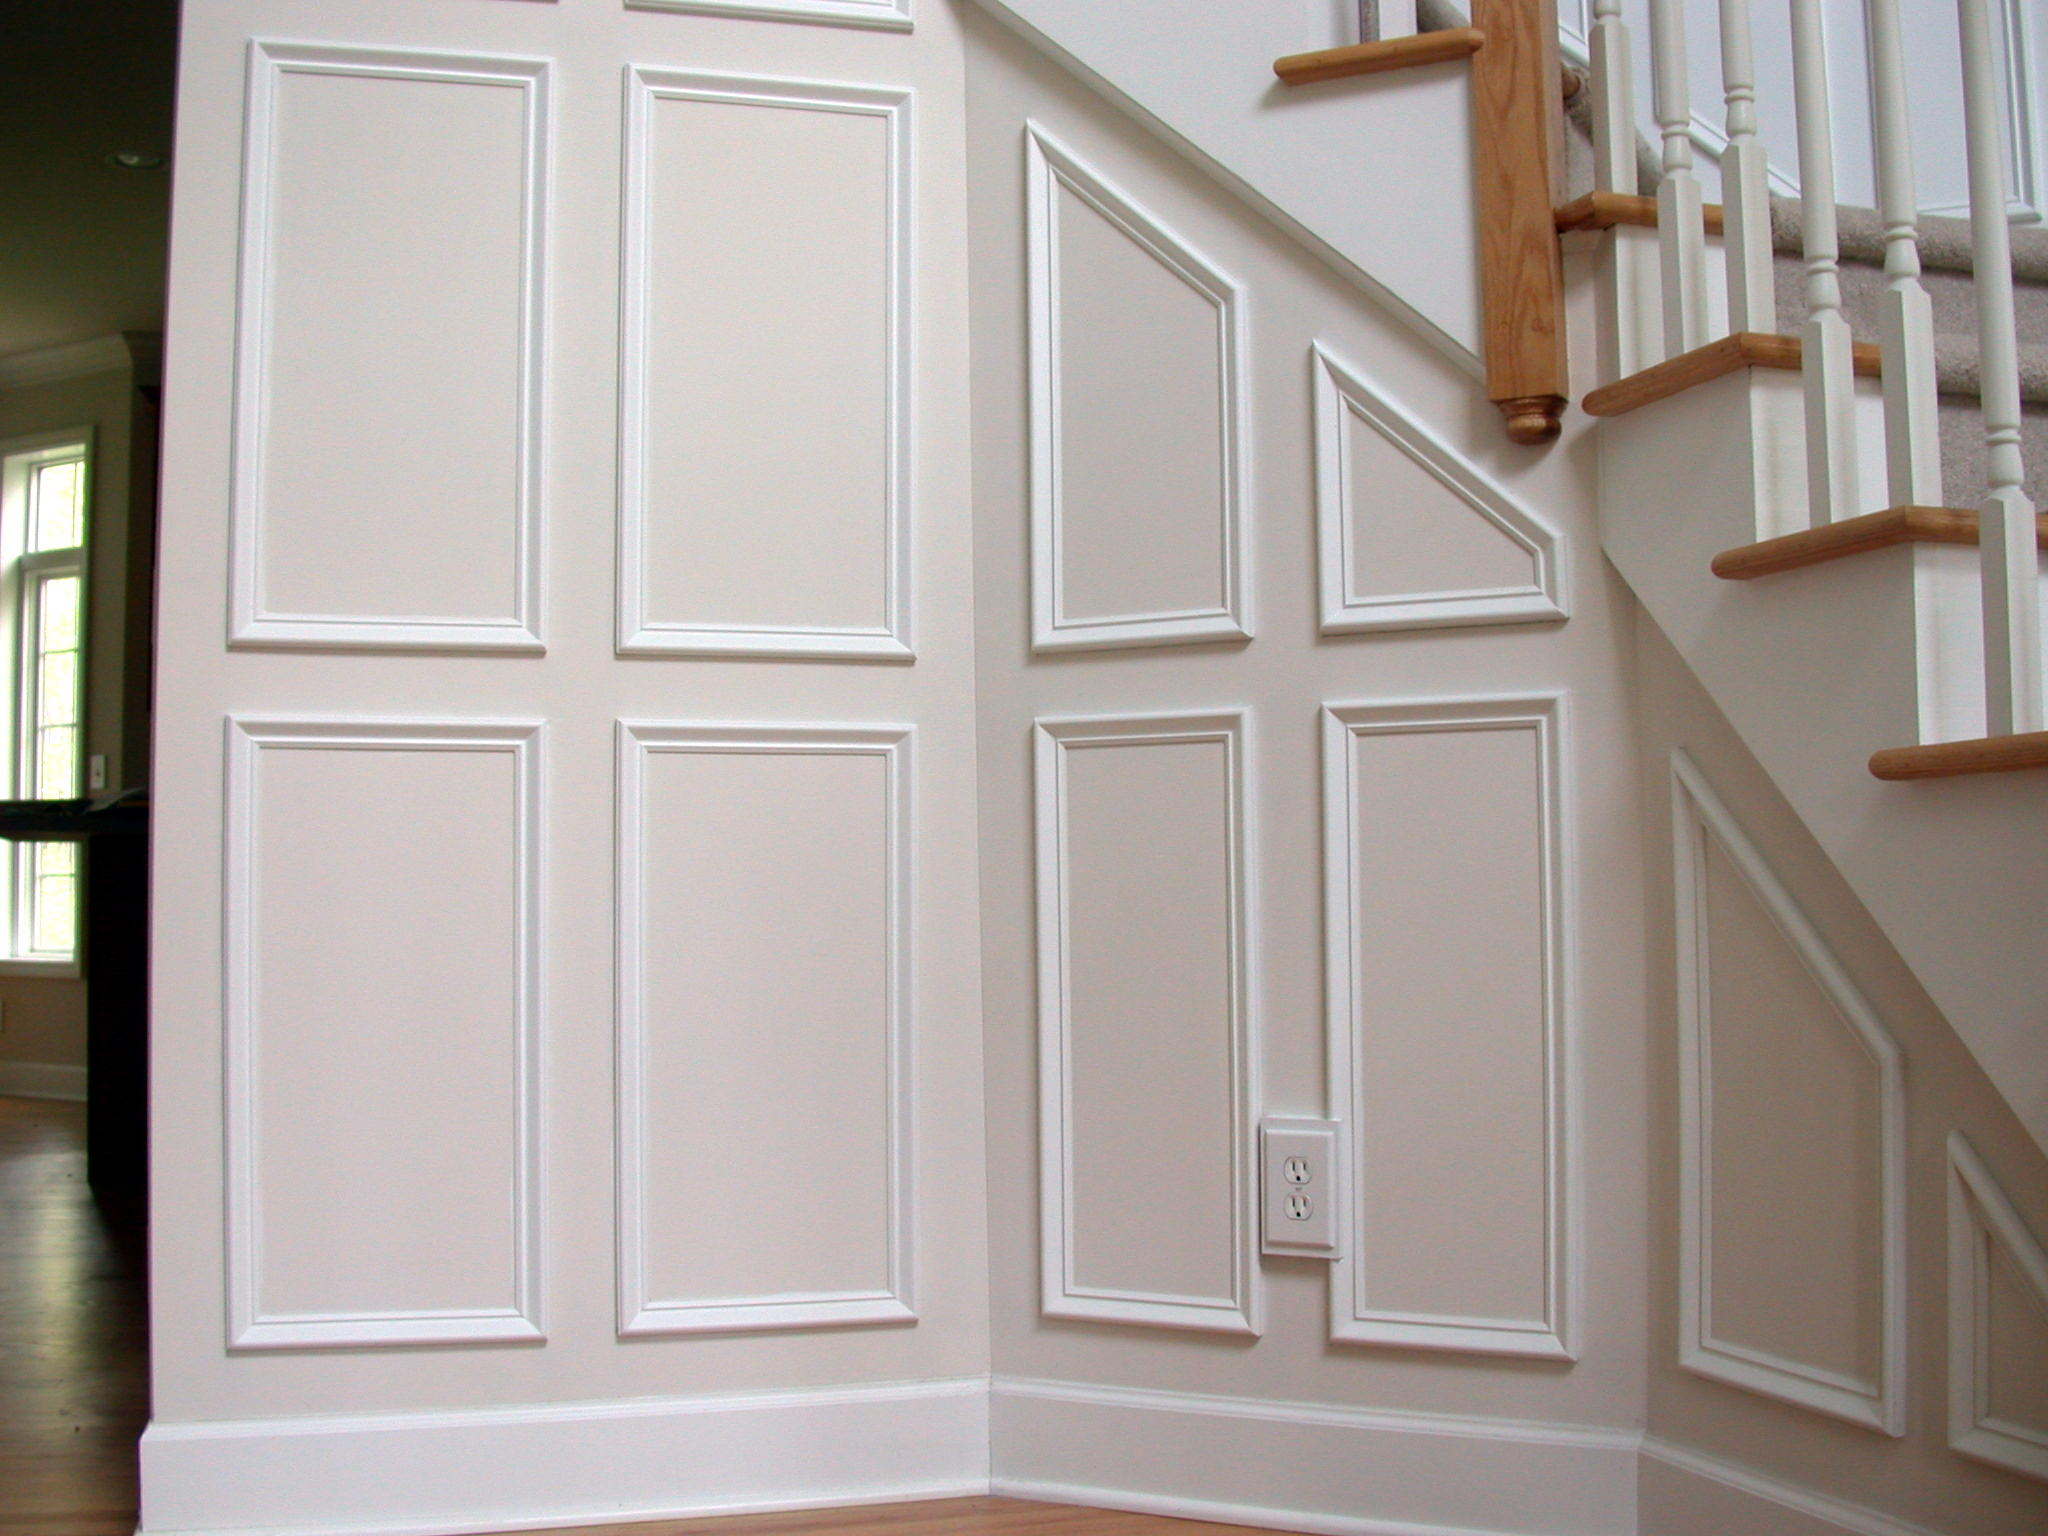 Wall trim molding ideas for Window molding ideas